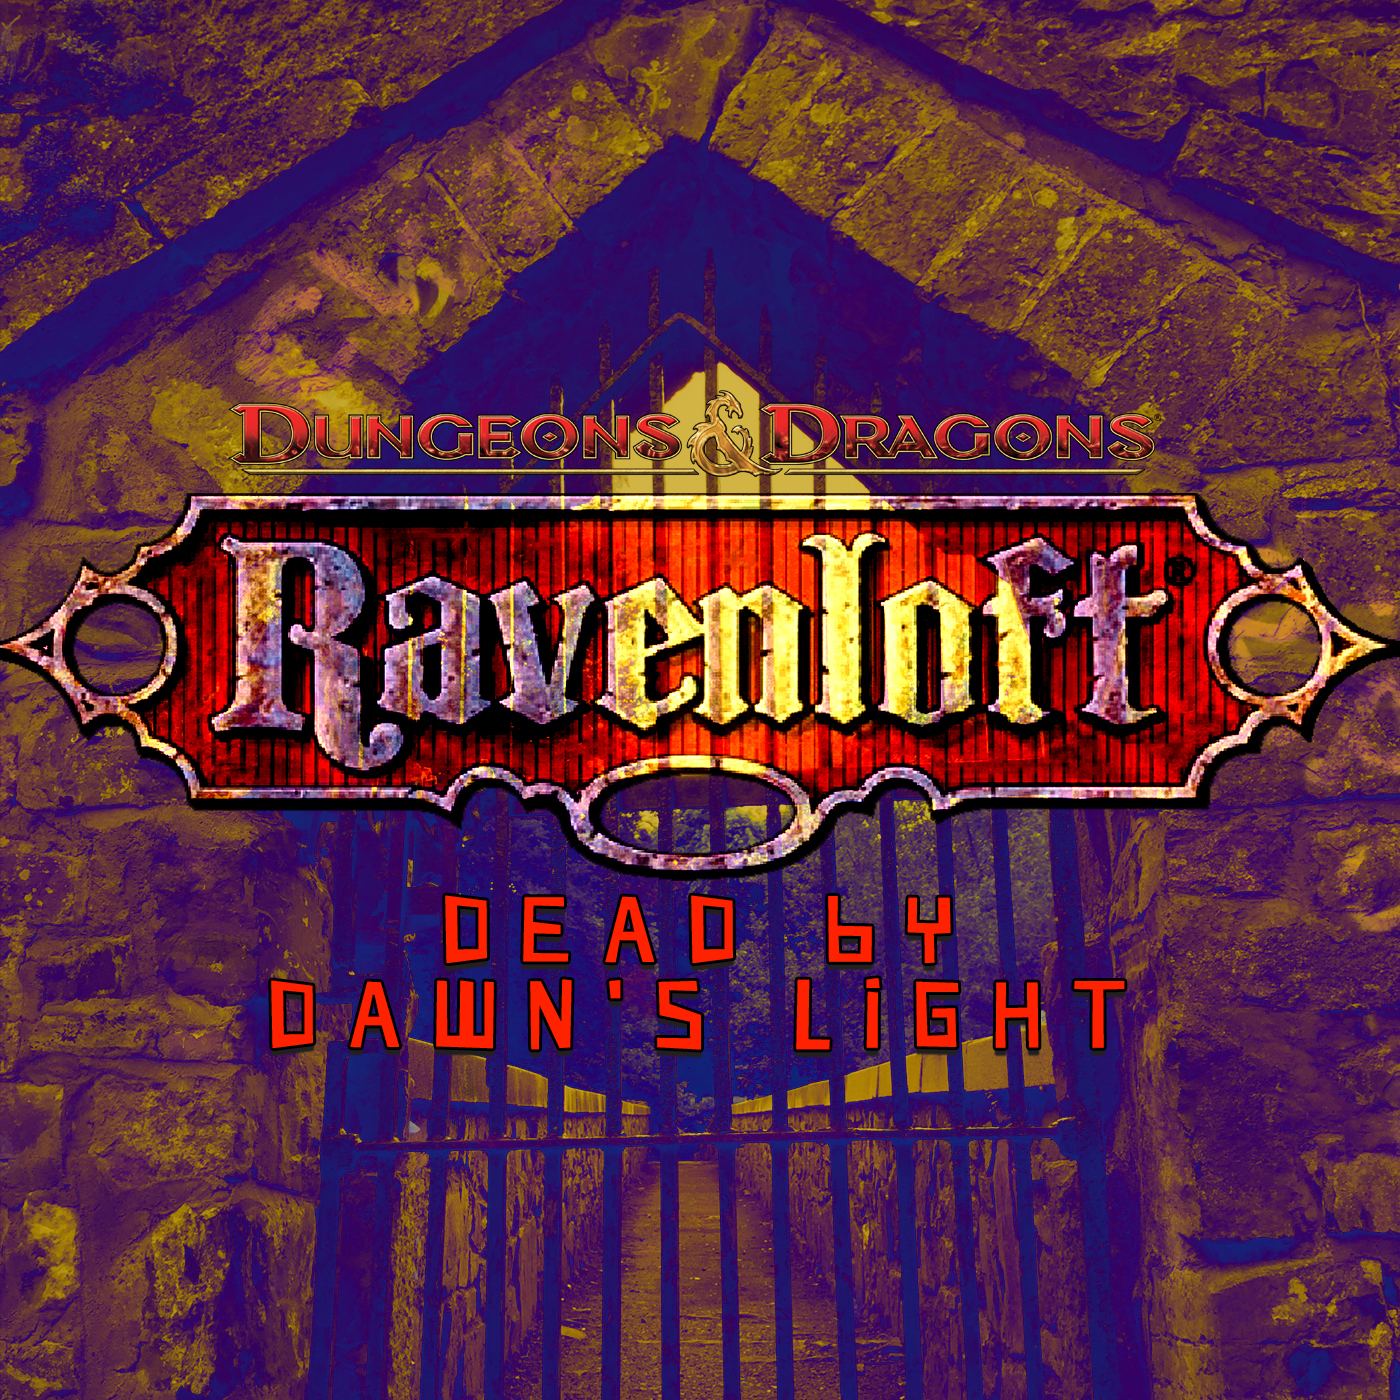 55 - Ravenloft Dead by Dawn's Light.jpg